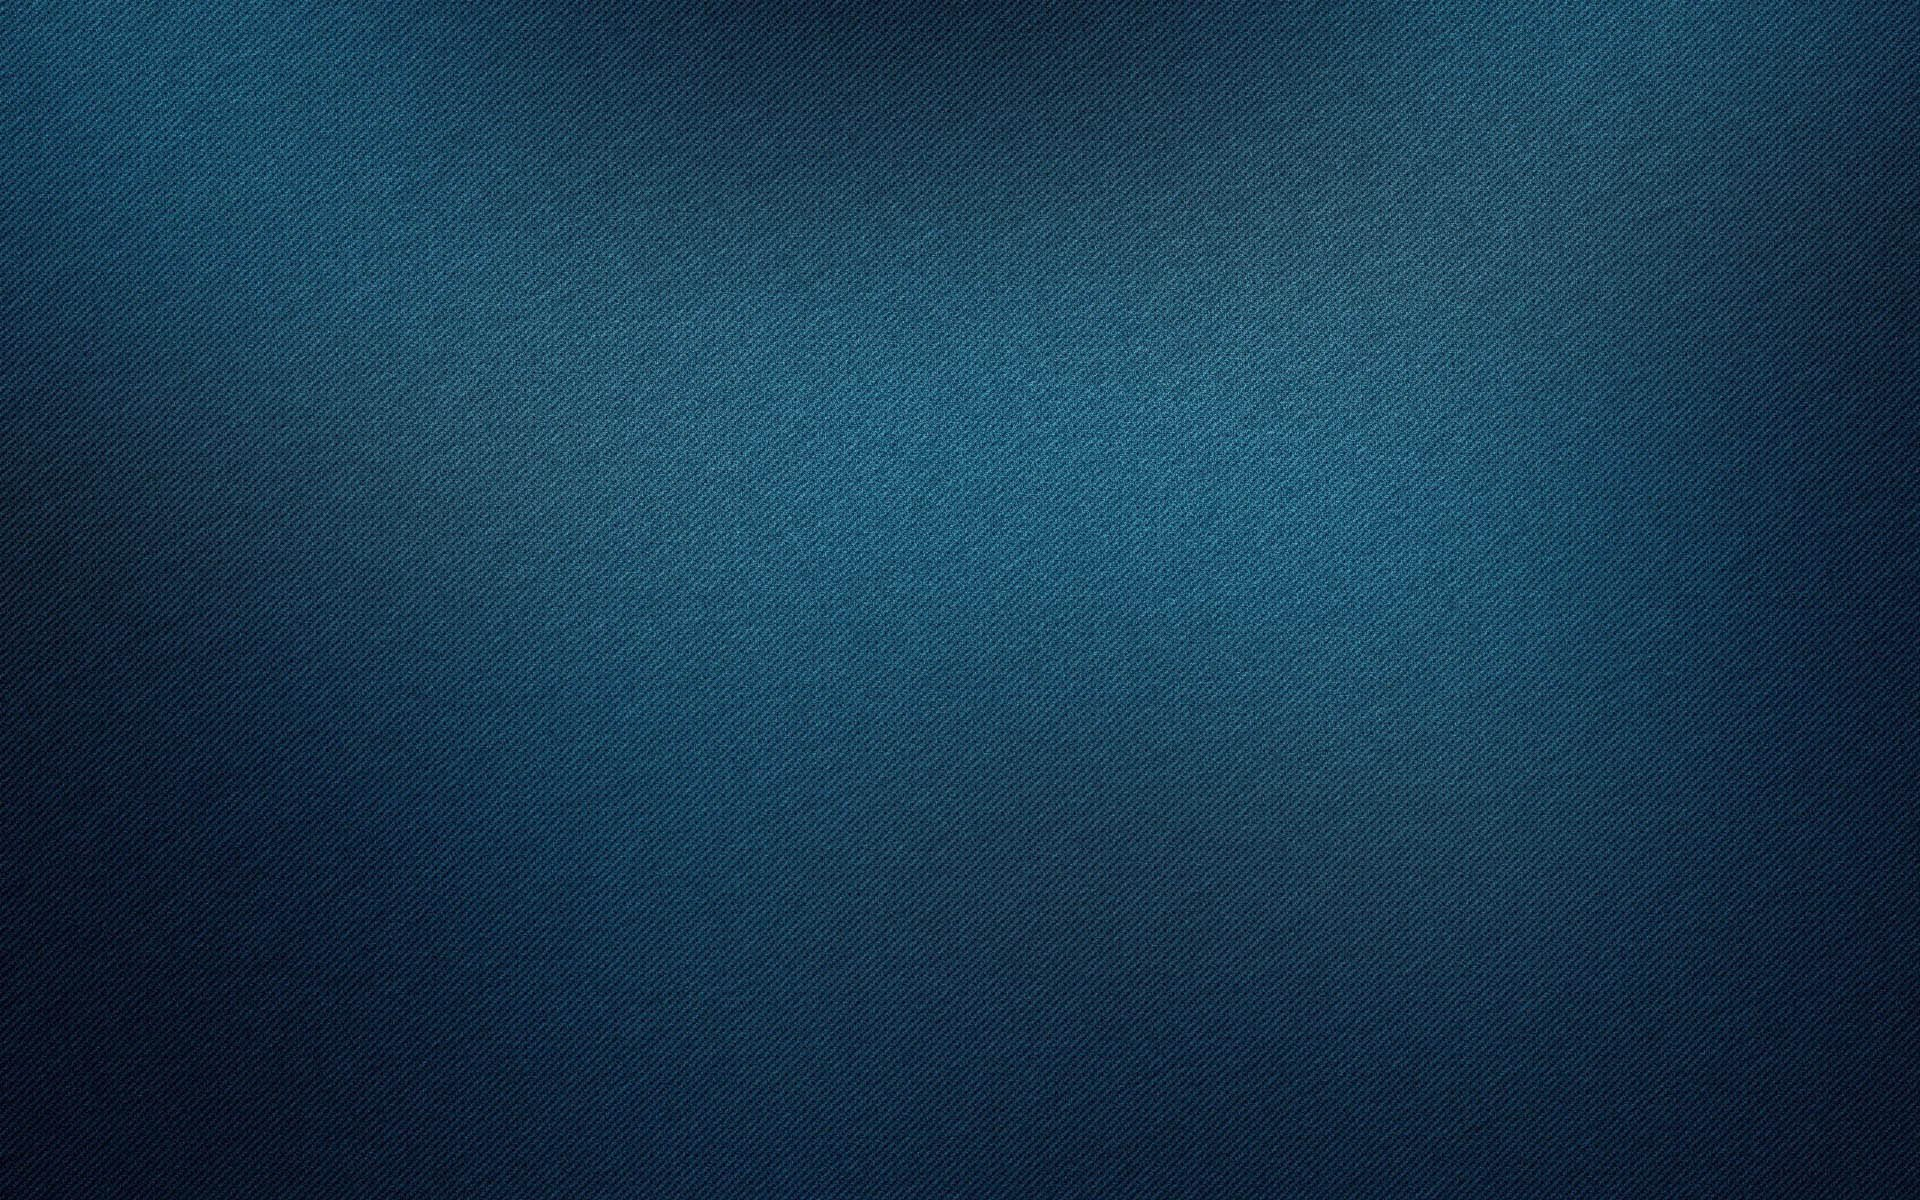 Simple Texture Wallpapers Group (71+)